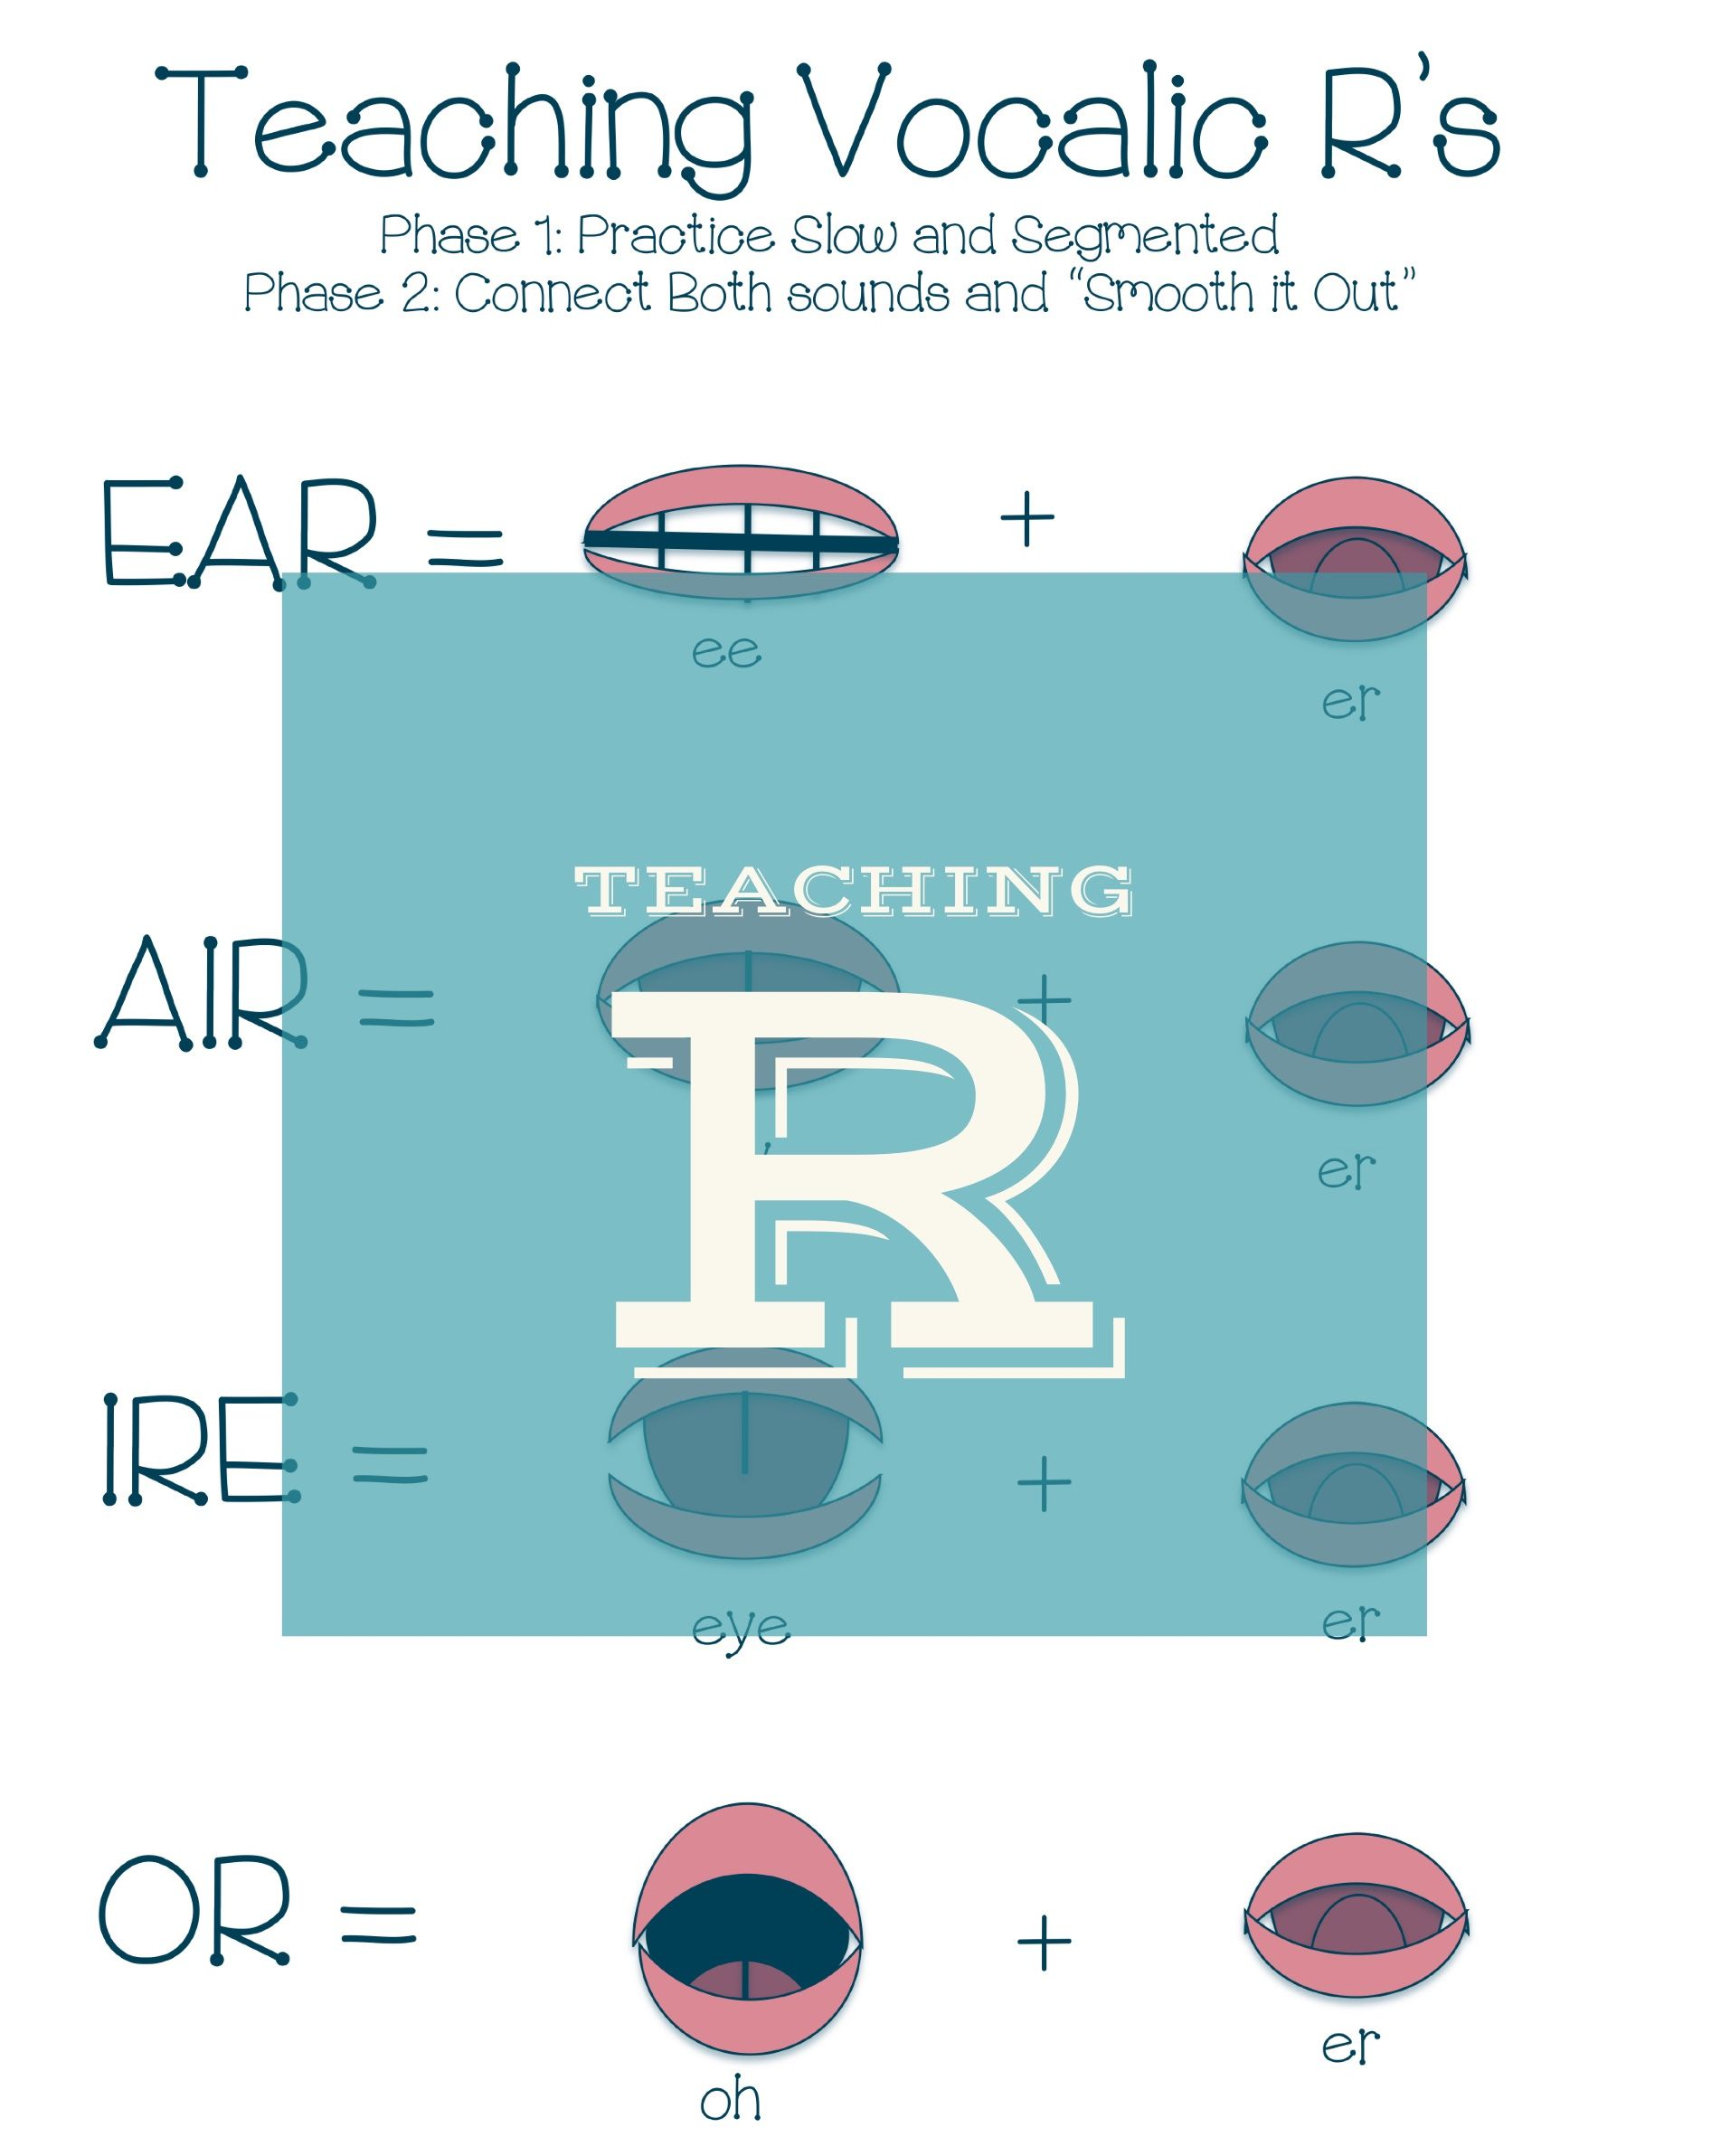 worksheet Vocalic R Worksheets check out this helpful blog post on how to teach the r sound teaching retroflex